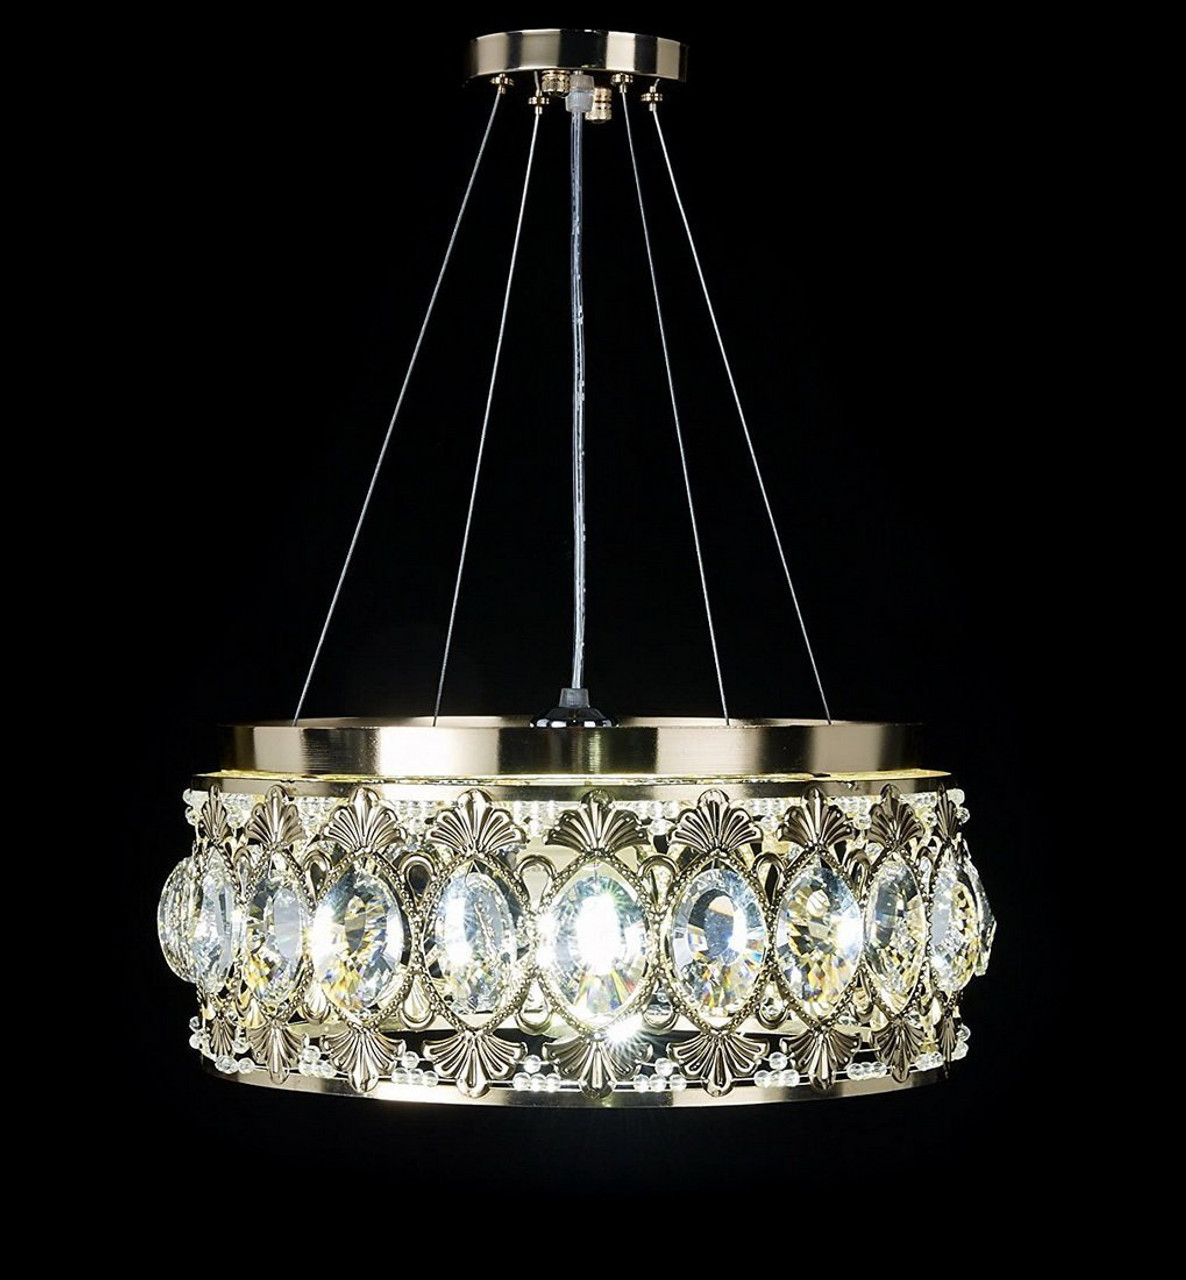 Diamond life gold finish modern crystal chandelier pendant hanging diamond life gold finish modern crystal chandelier pendant hanging or flush mount ceiling lighting fixture aloadofball Gallery